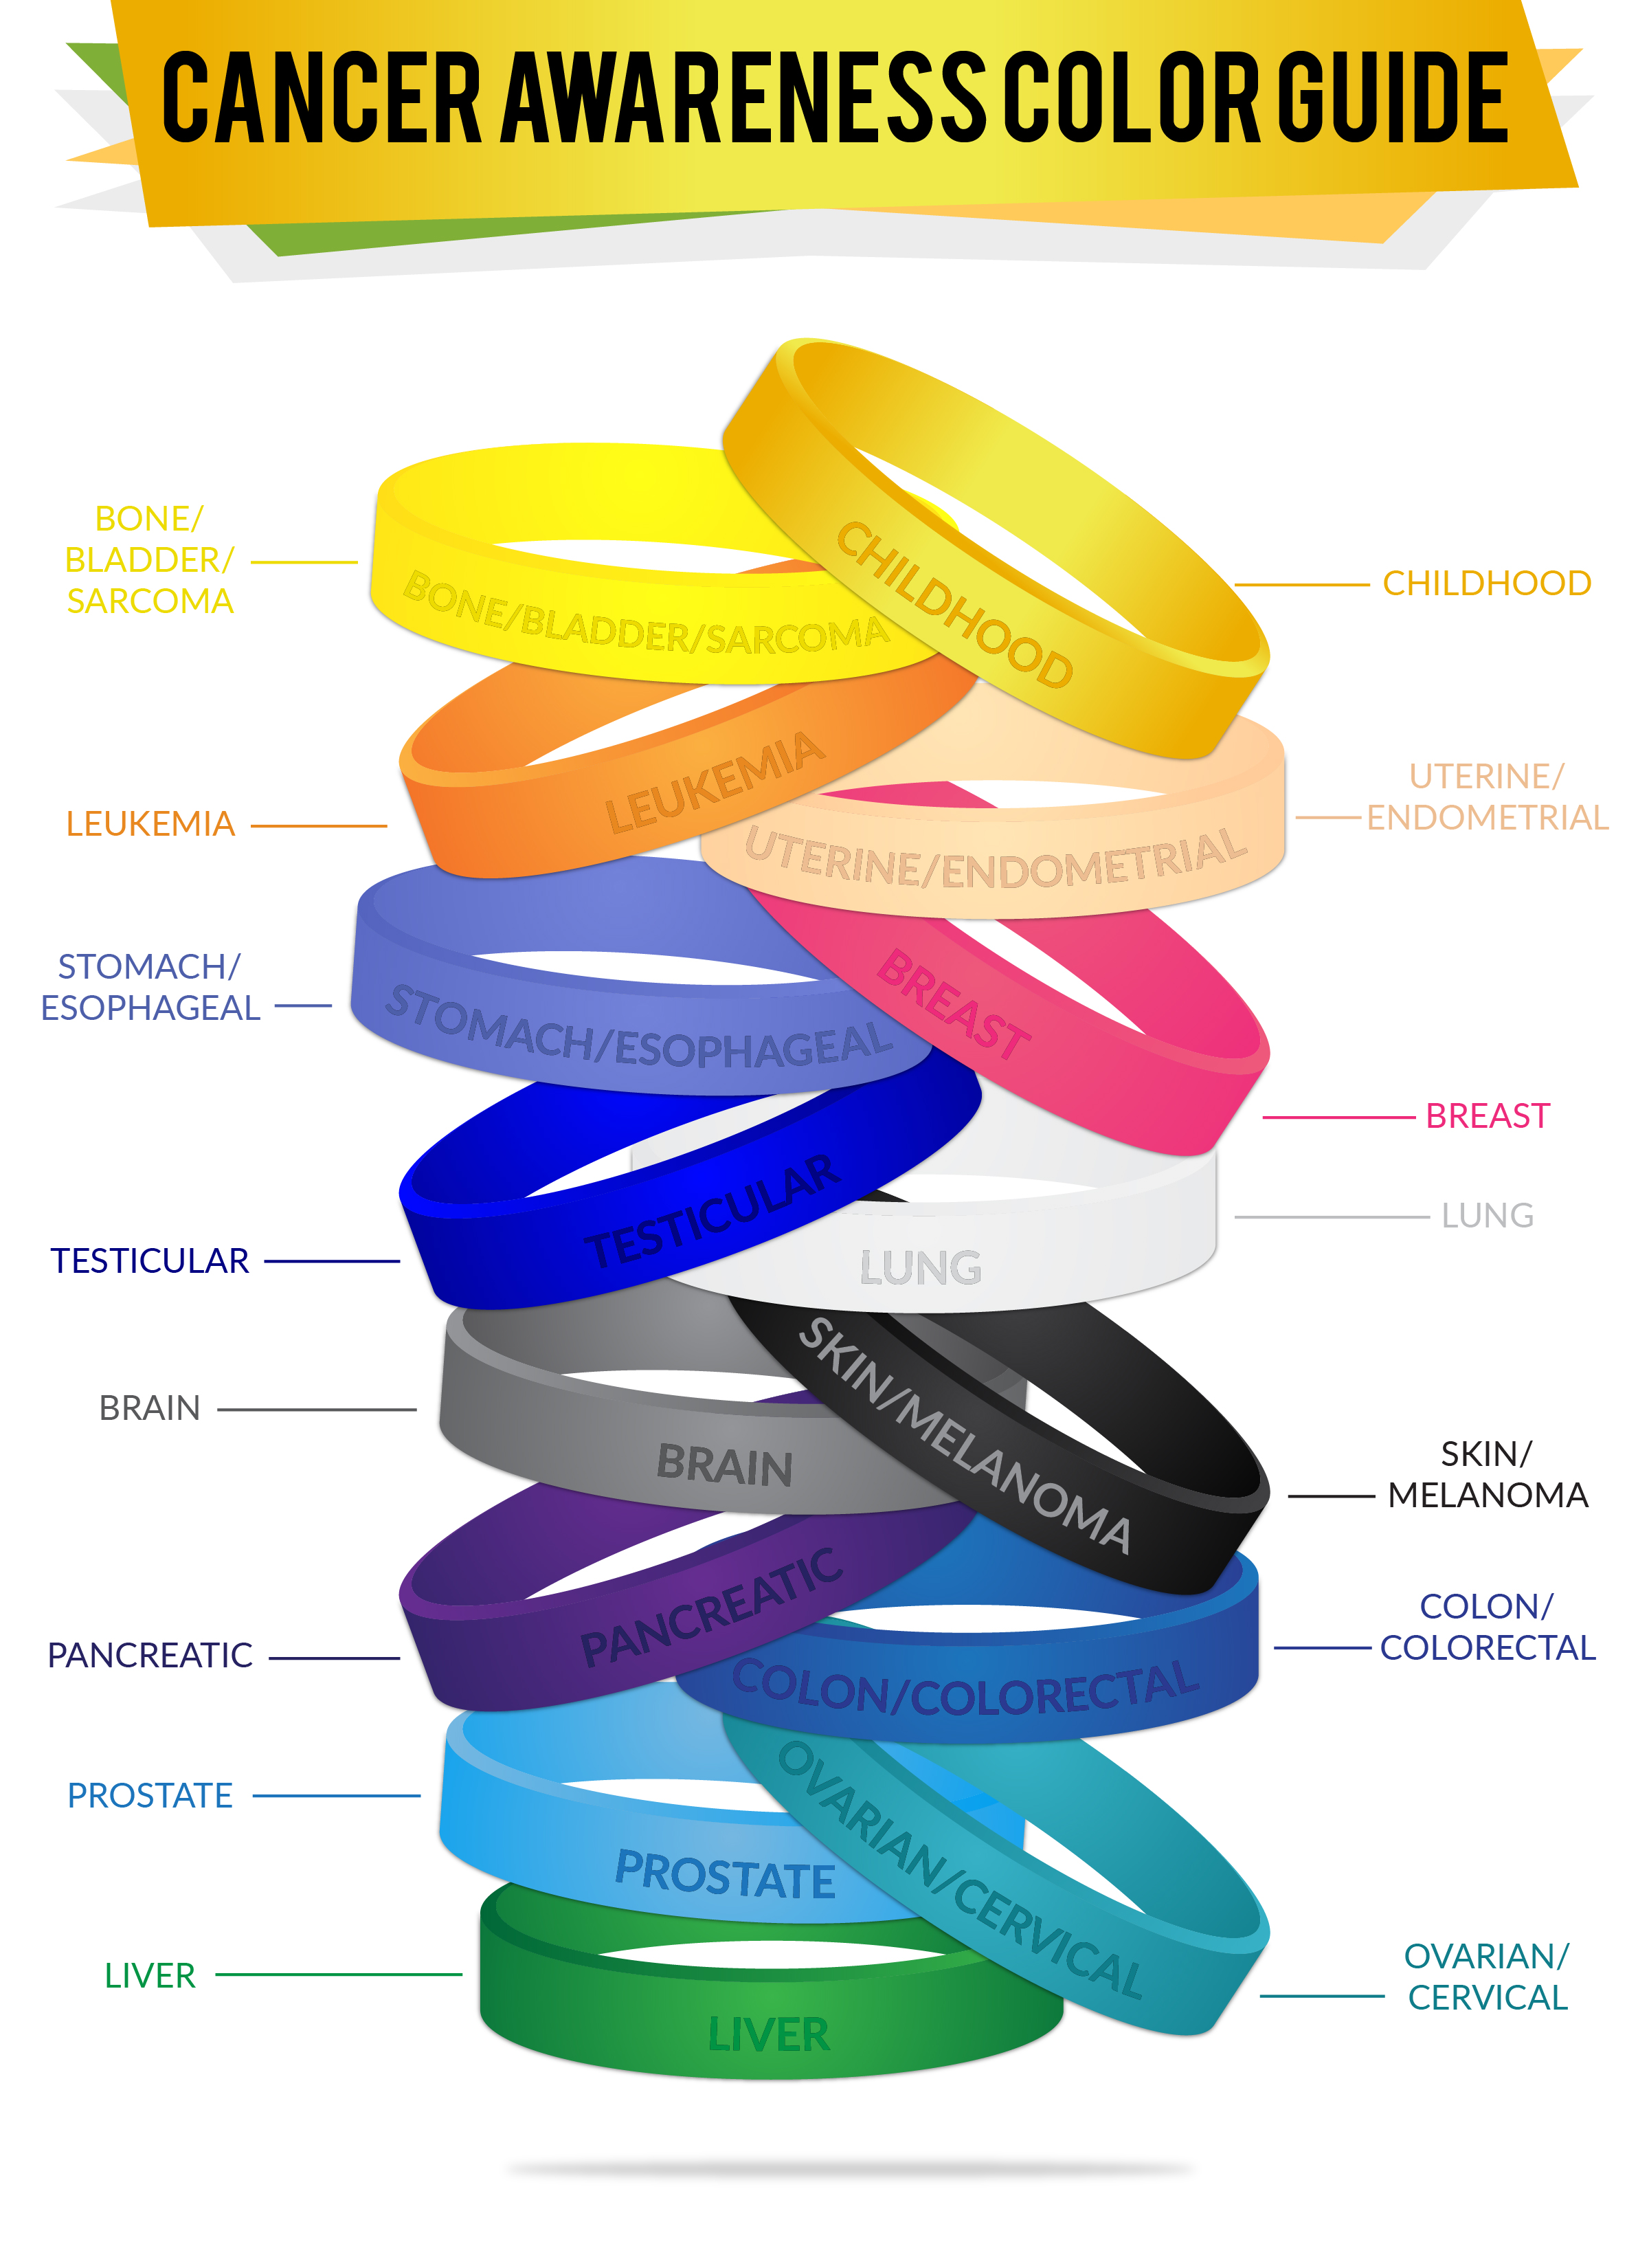 Cancer color awareness color guide infographic. Each color wristbands represent particular cancer.